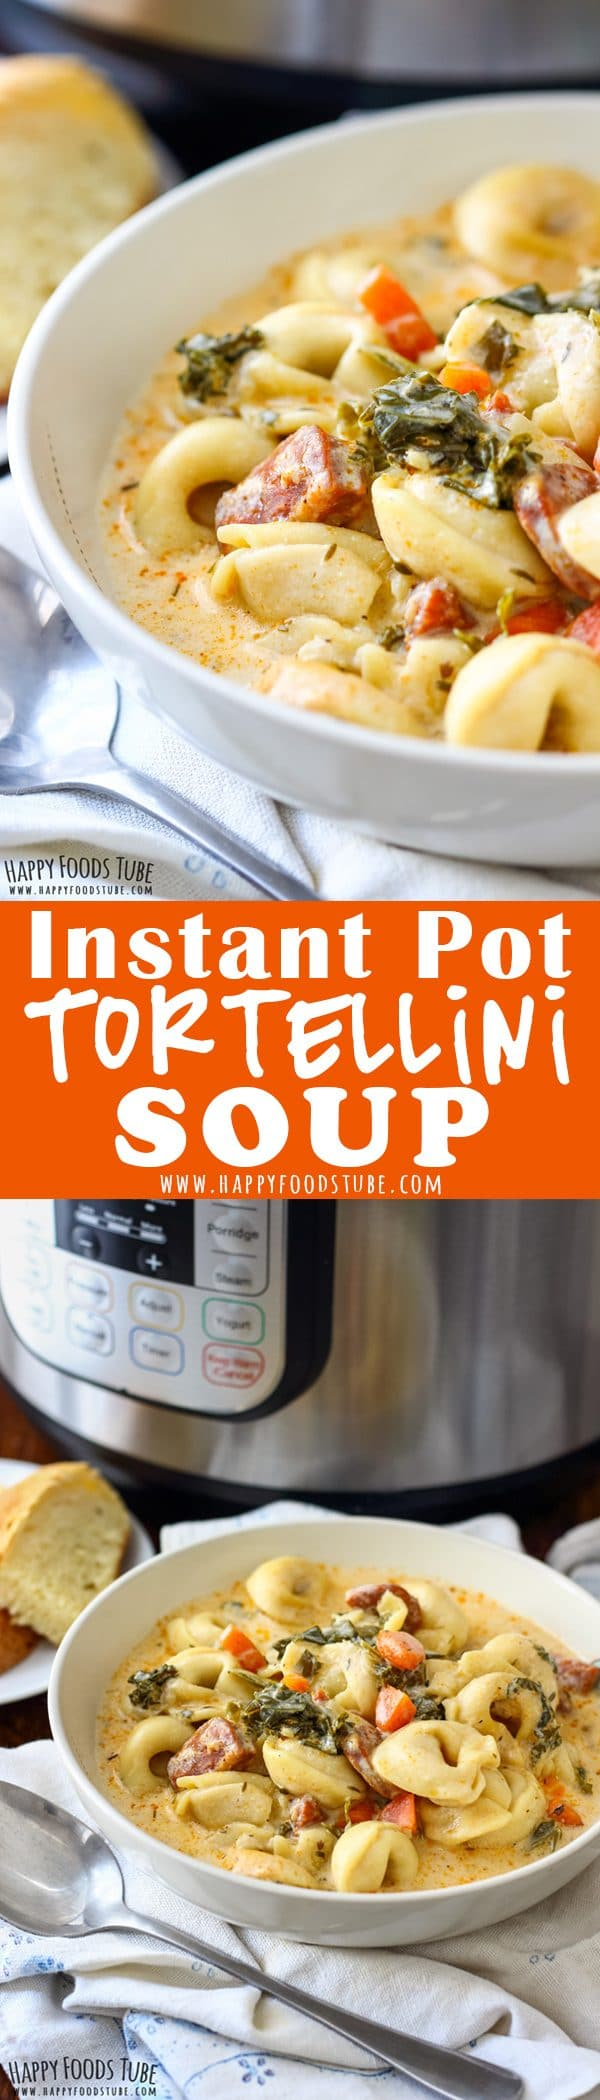 Instant Pot Creamy Tortellini Soup Recipe Picture